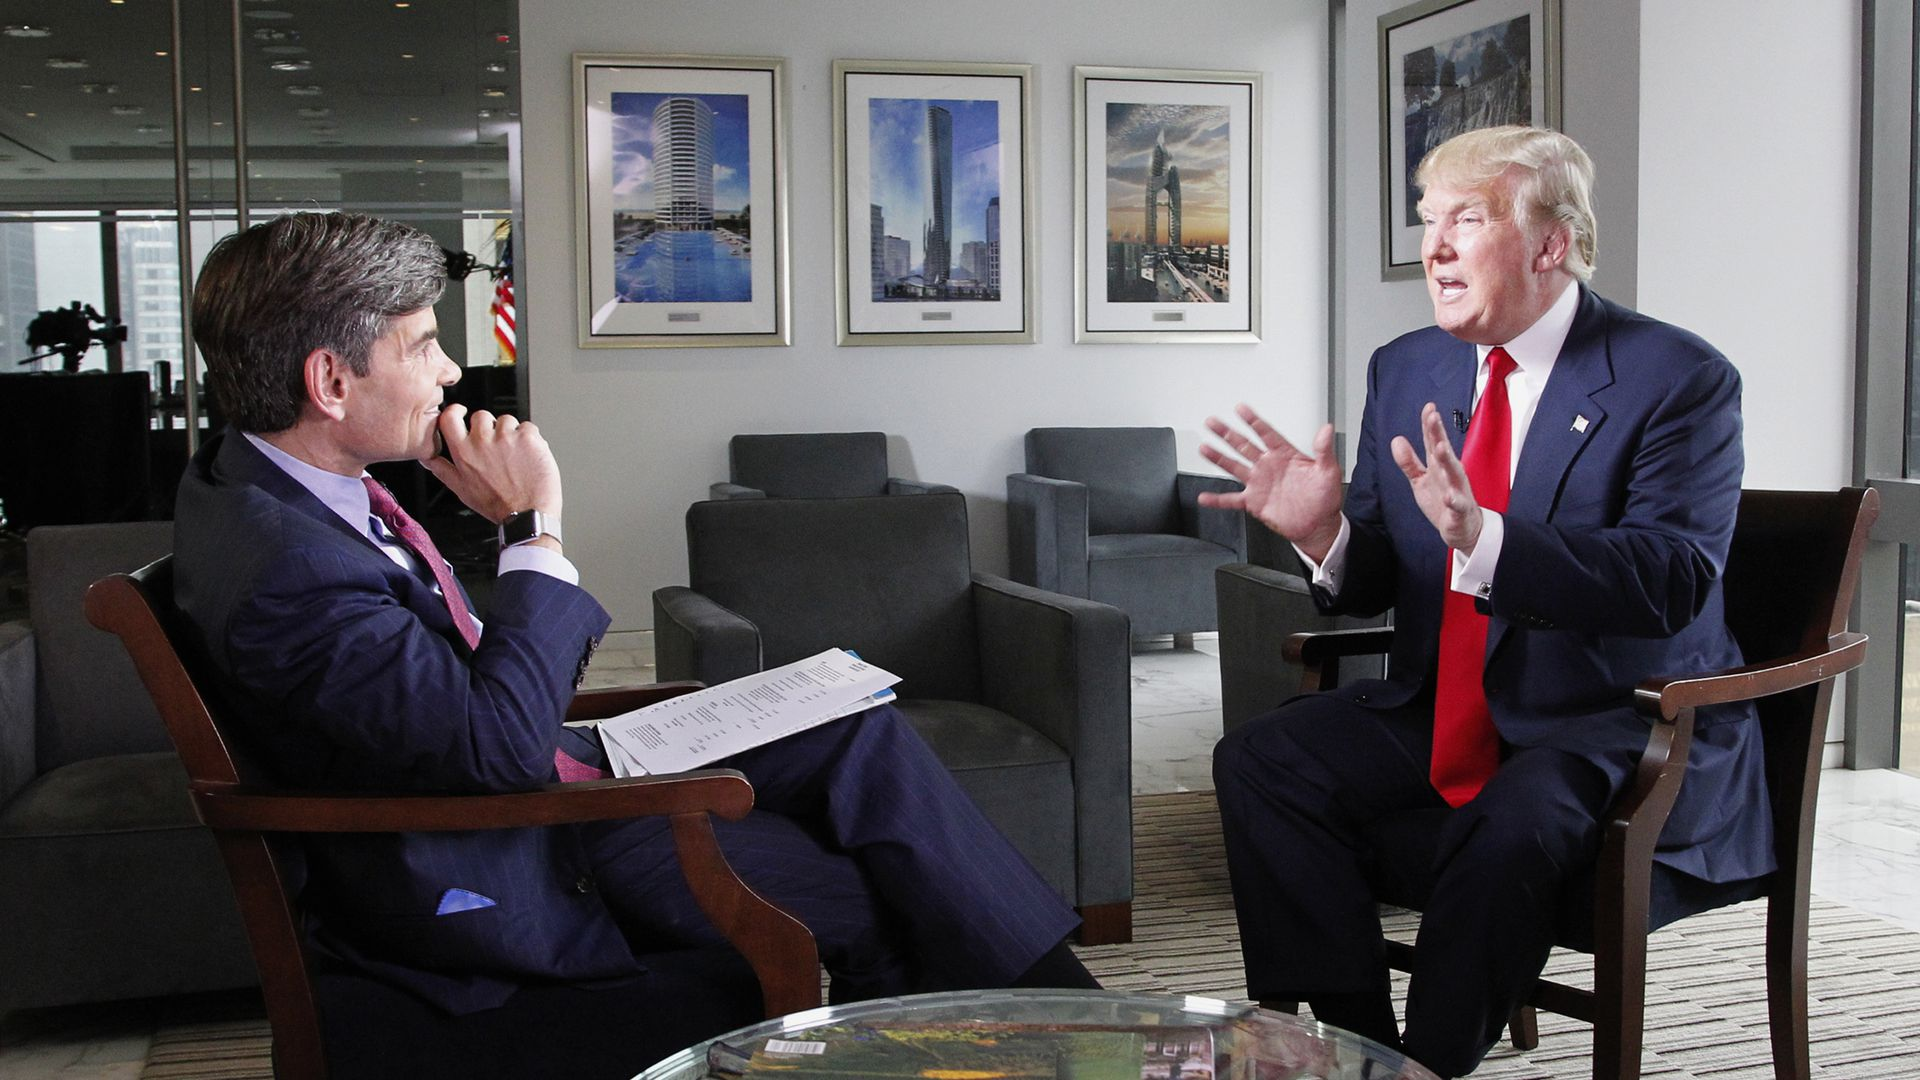 ABC's George Stephanopoulos first interviewing President Donald Trump in 2015